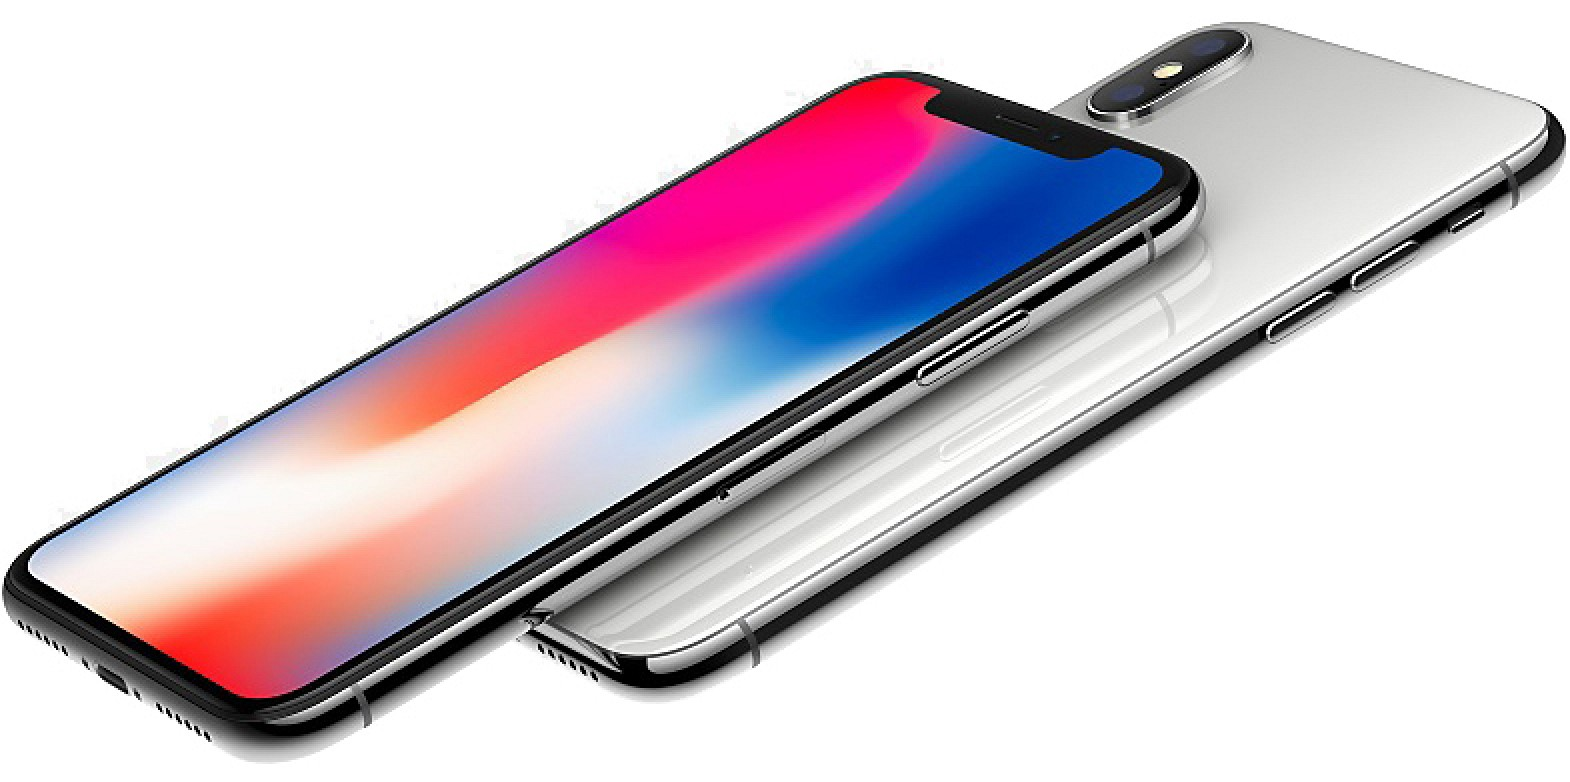 TIME Ranks iPhone X and Apple Watch Series 3 Among Top 10 Best Gadgets of 2017